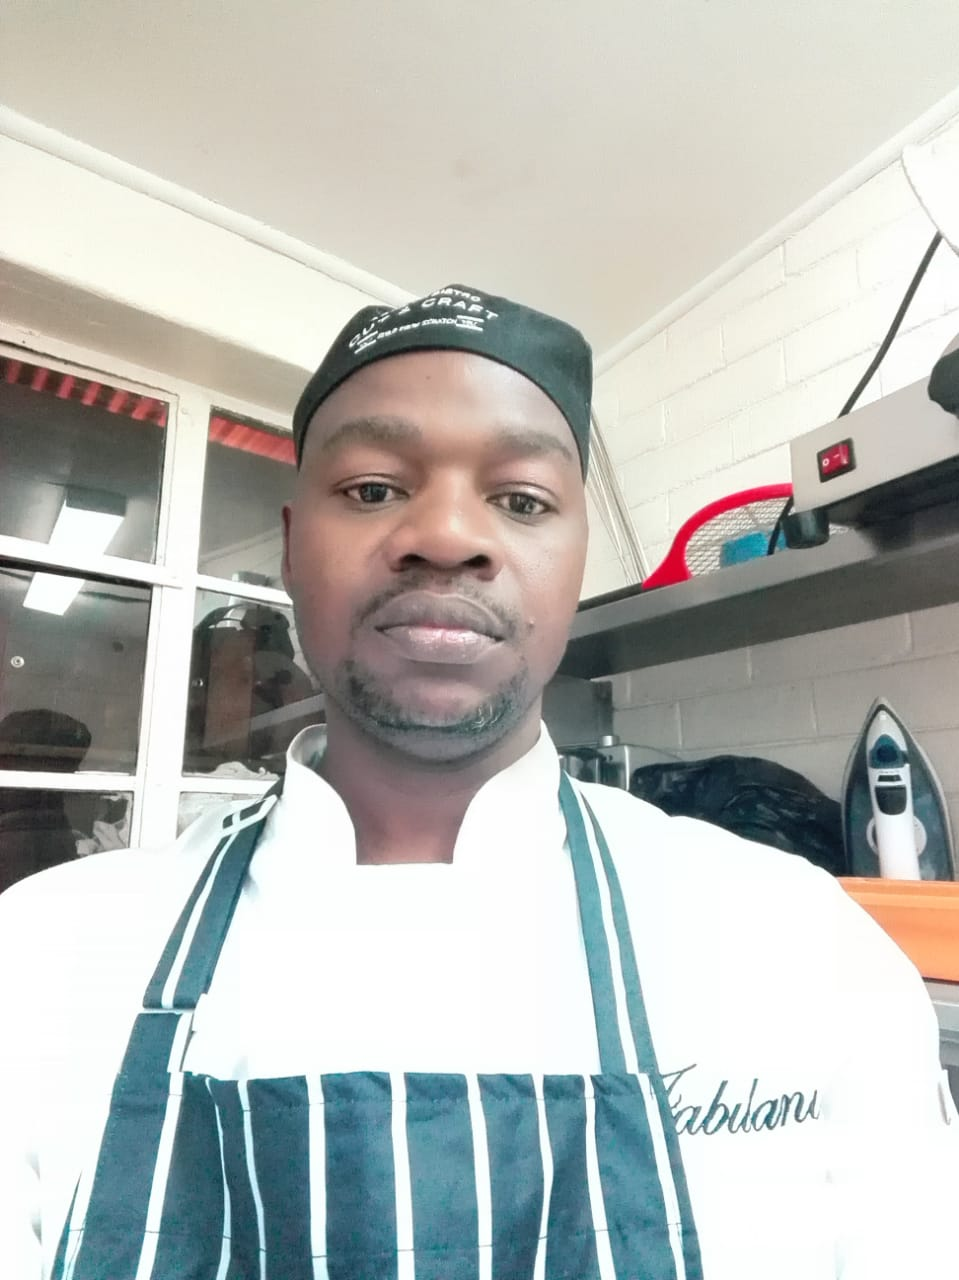 Chef Griller